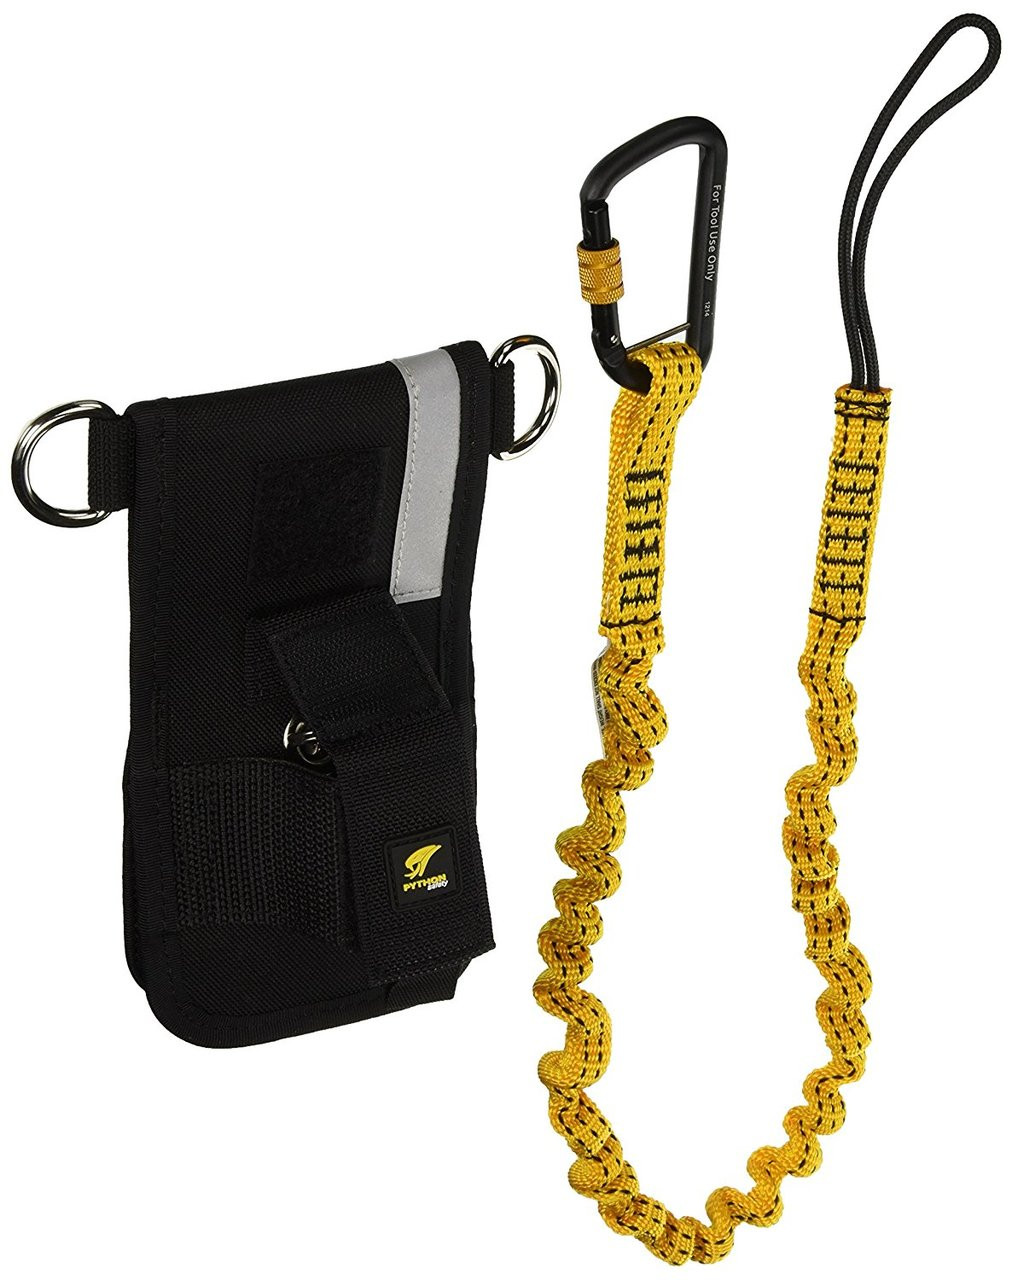 Python Safety 1500097 Wrench Holster with Retractor and Bungee Tether